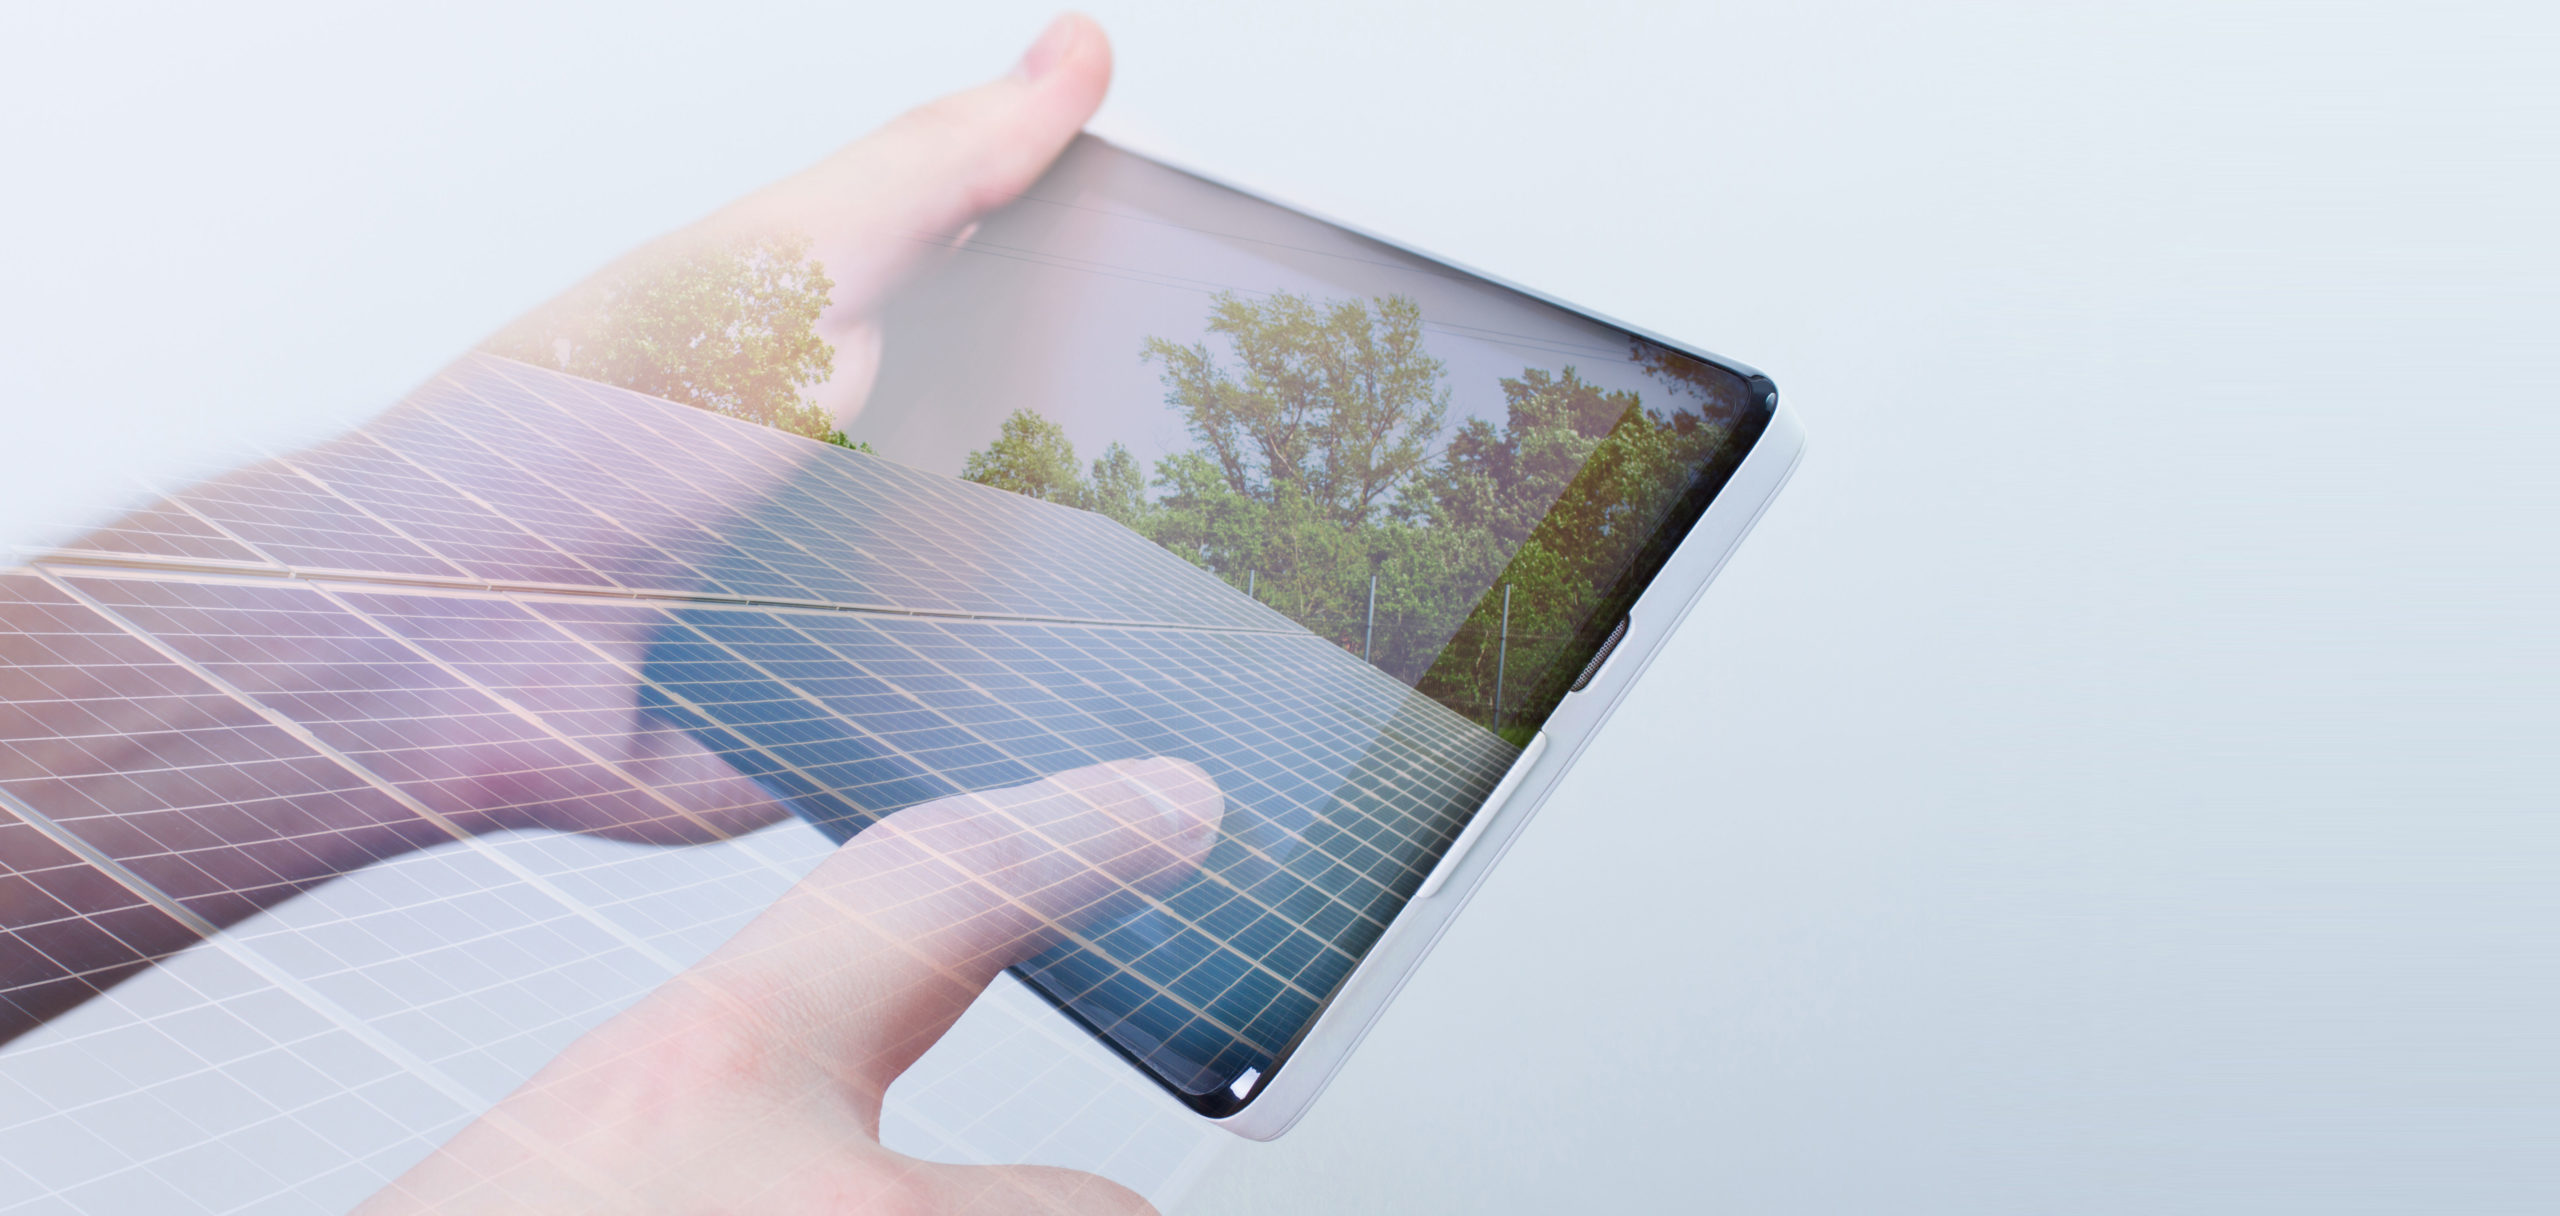 double-exposure-hand-holding-digital-tablet-solar-panels-on-screen1